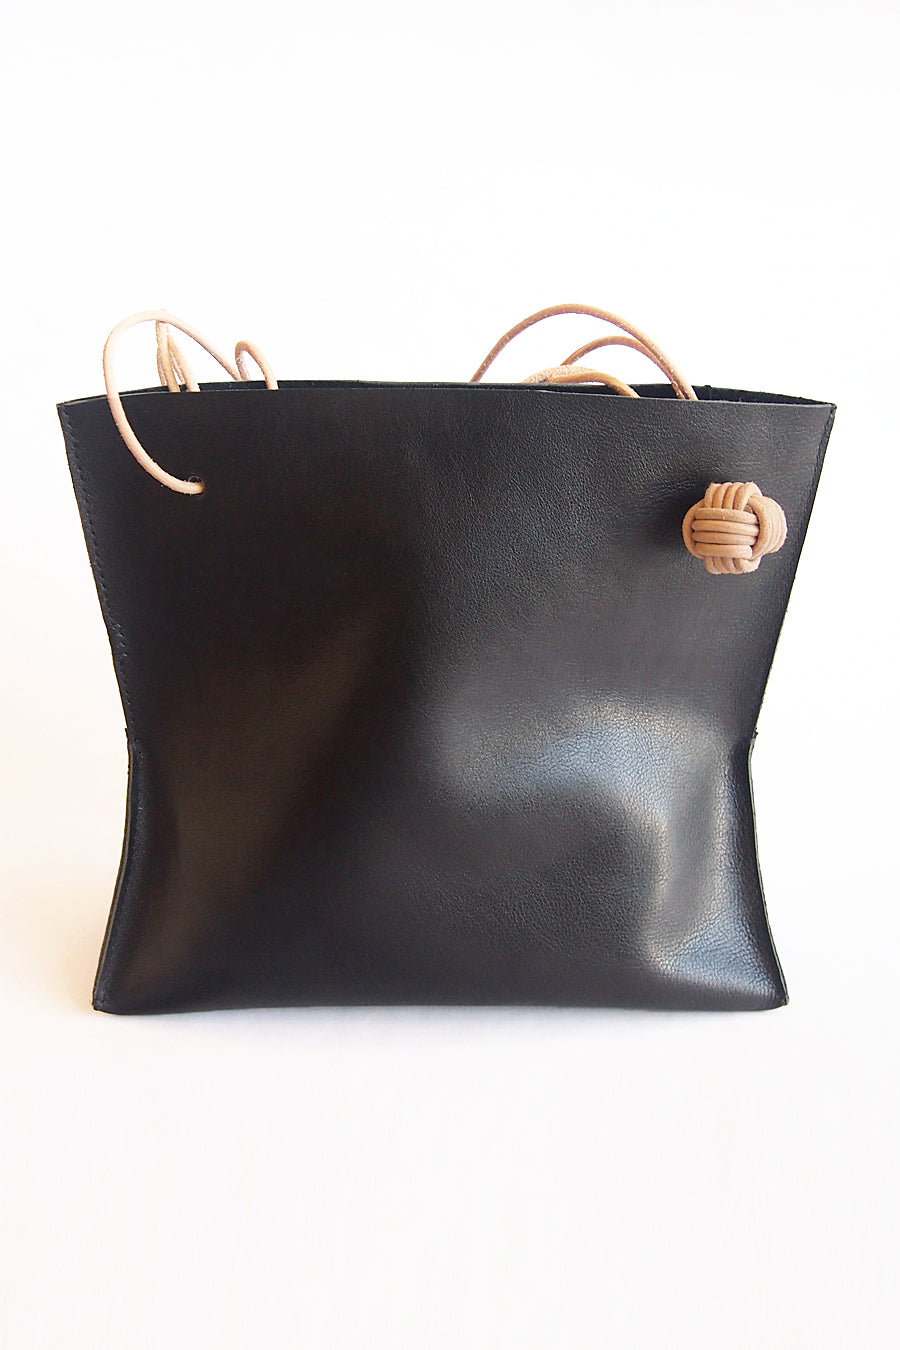 k(not) Tote in Black/Veg Tan